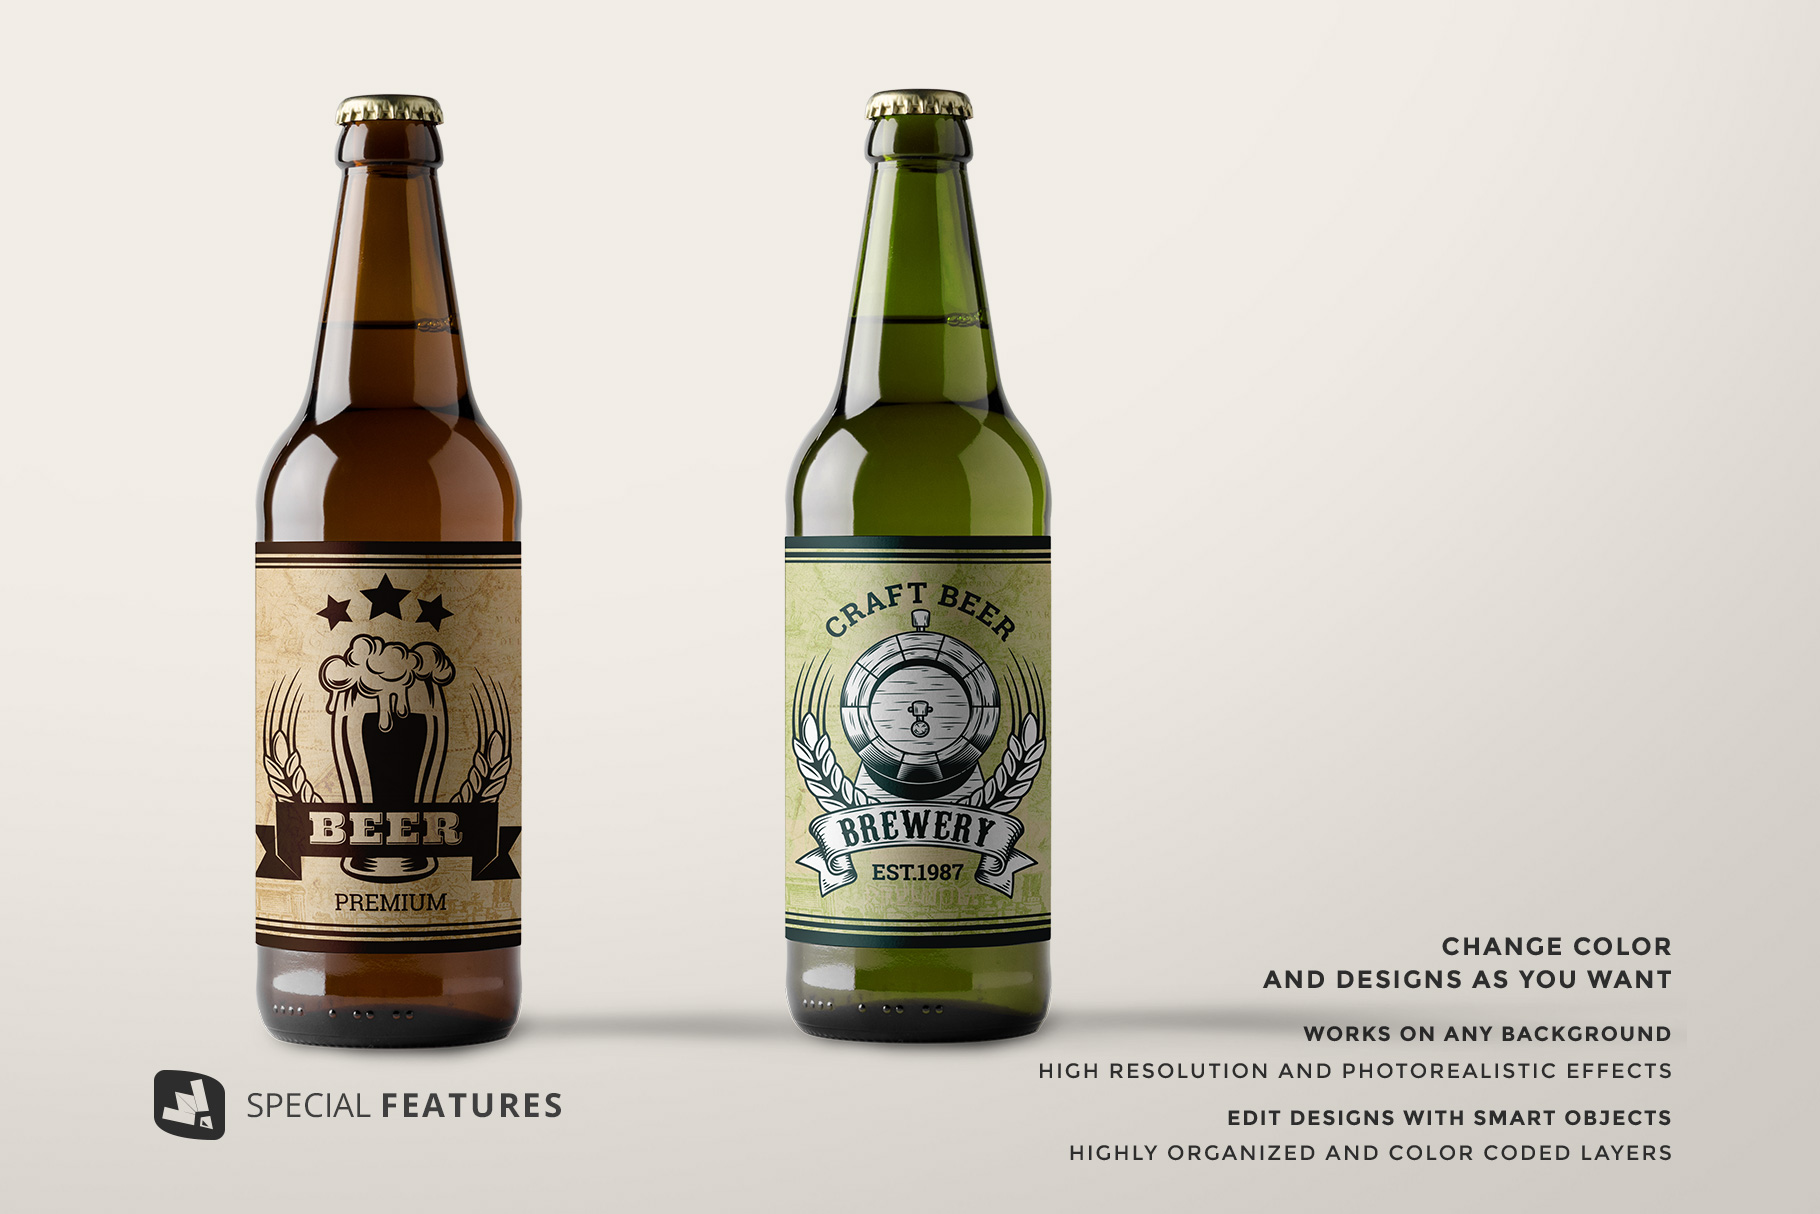 special features of the craft beer bottle packaging mockup